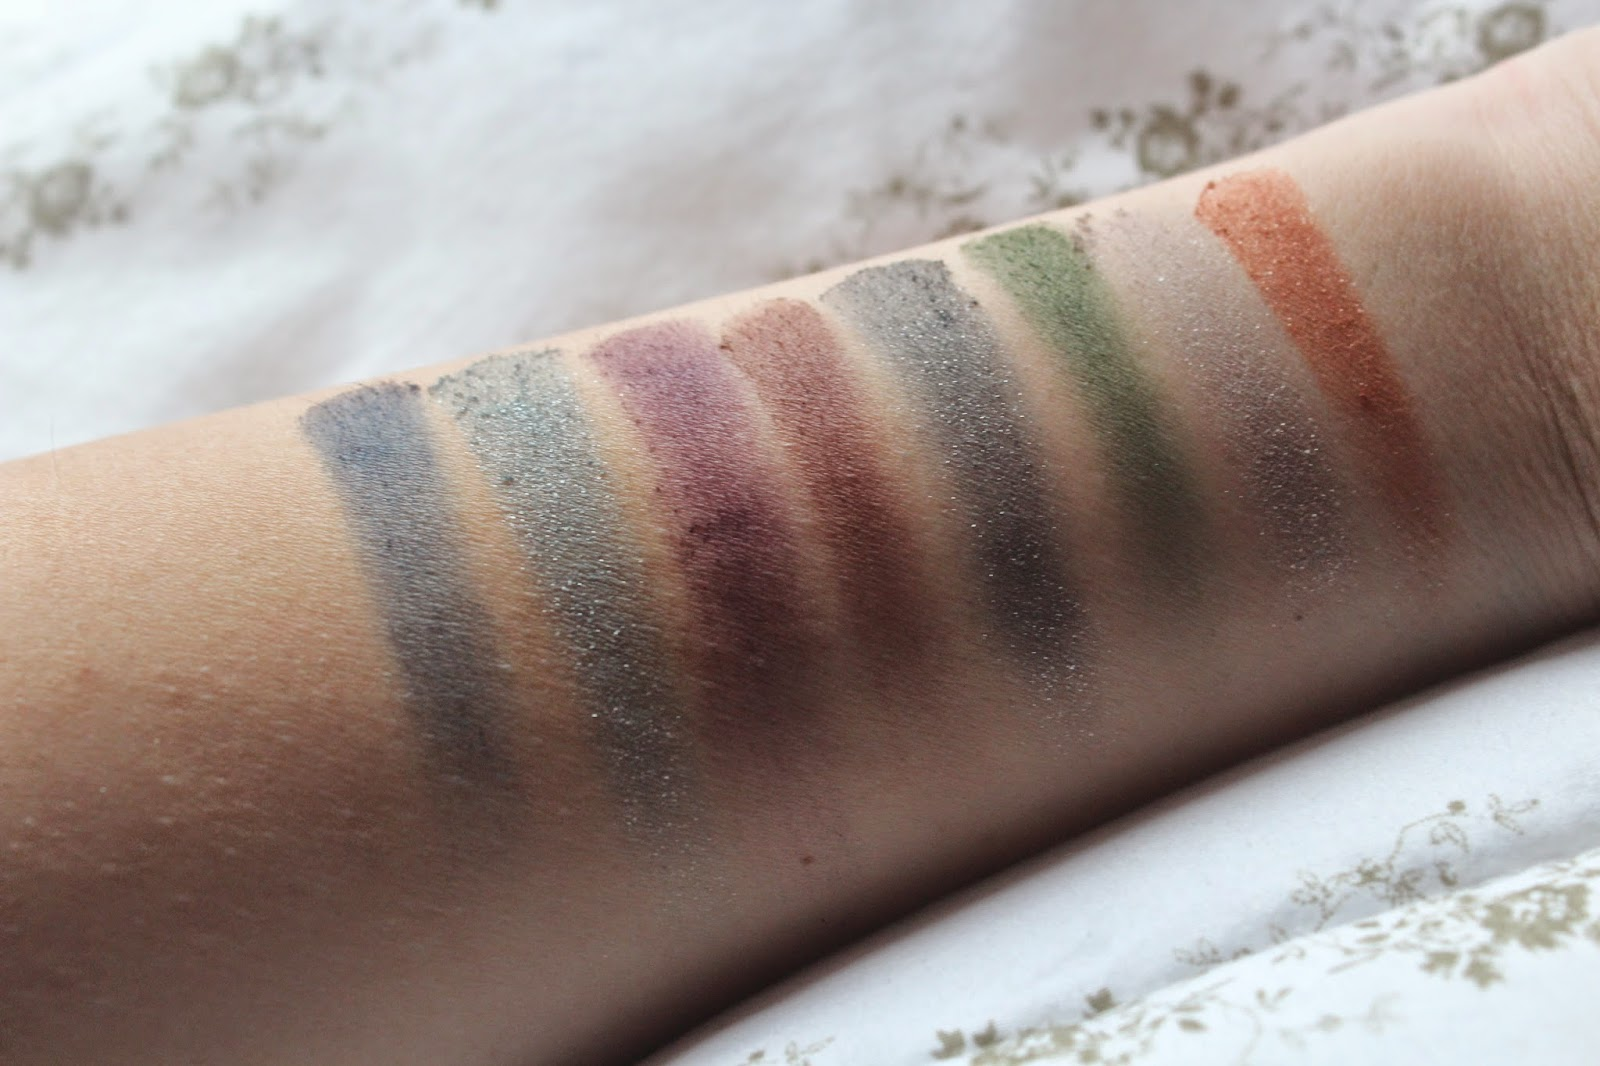 Secrets in wonderland: so susan liquid powder shadow palette ...